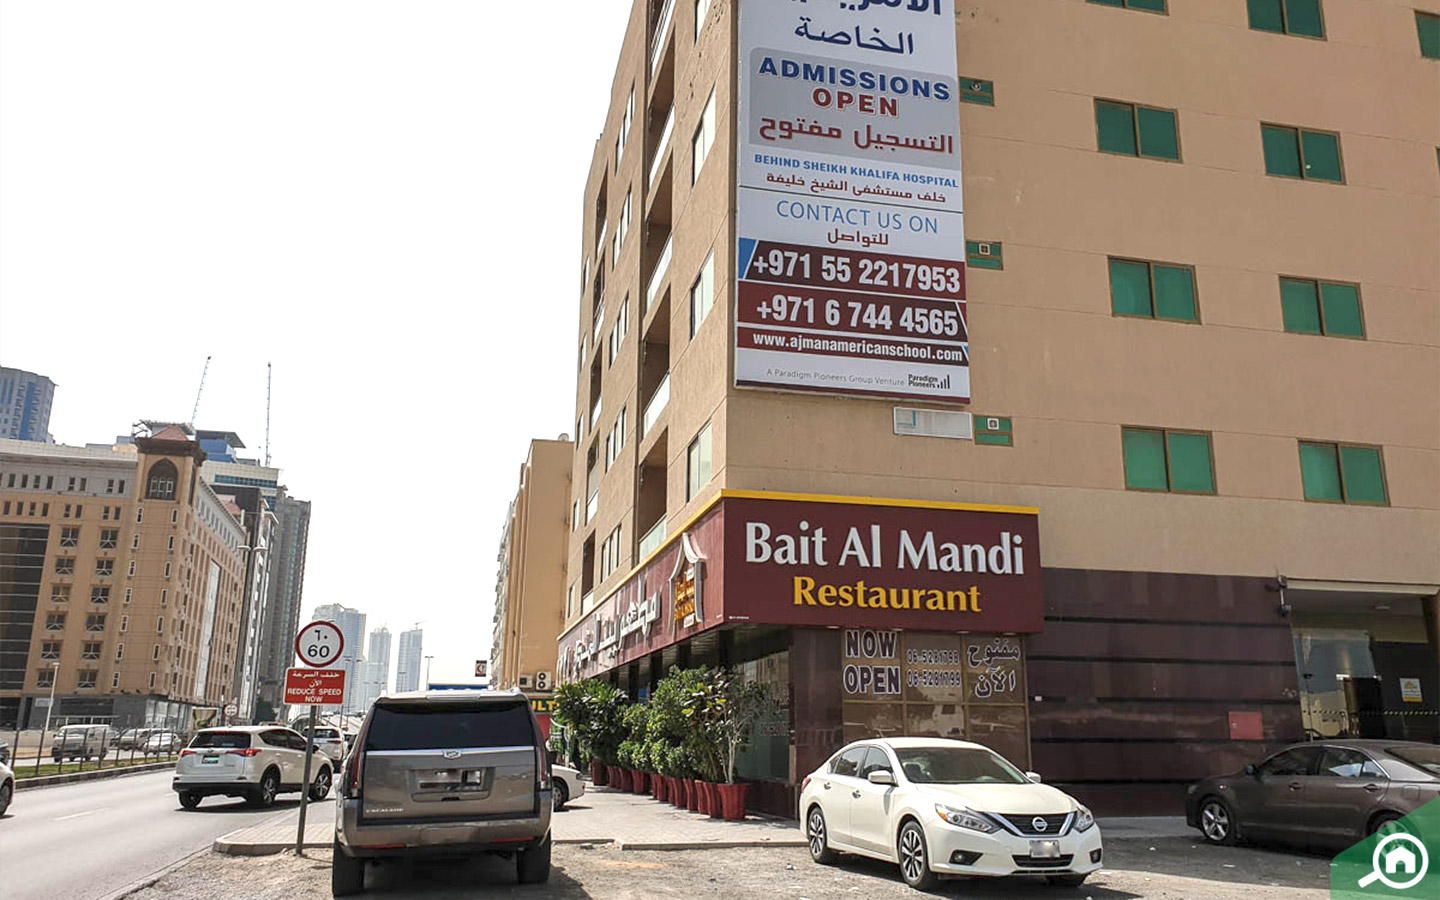 bait al mandi restaurant in al khan